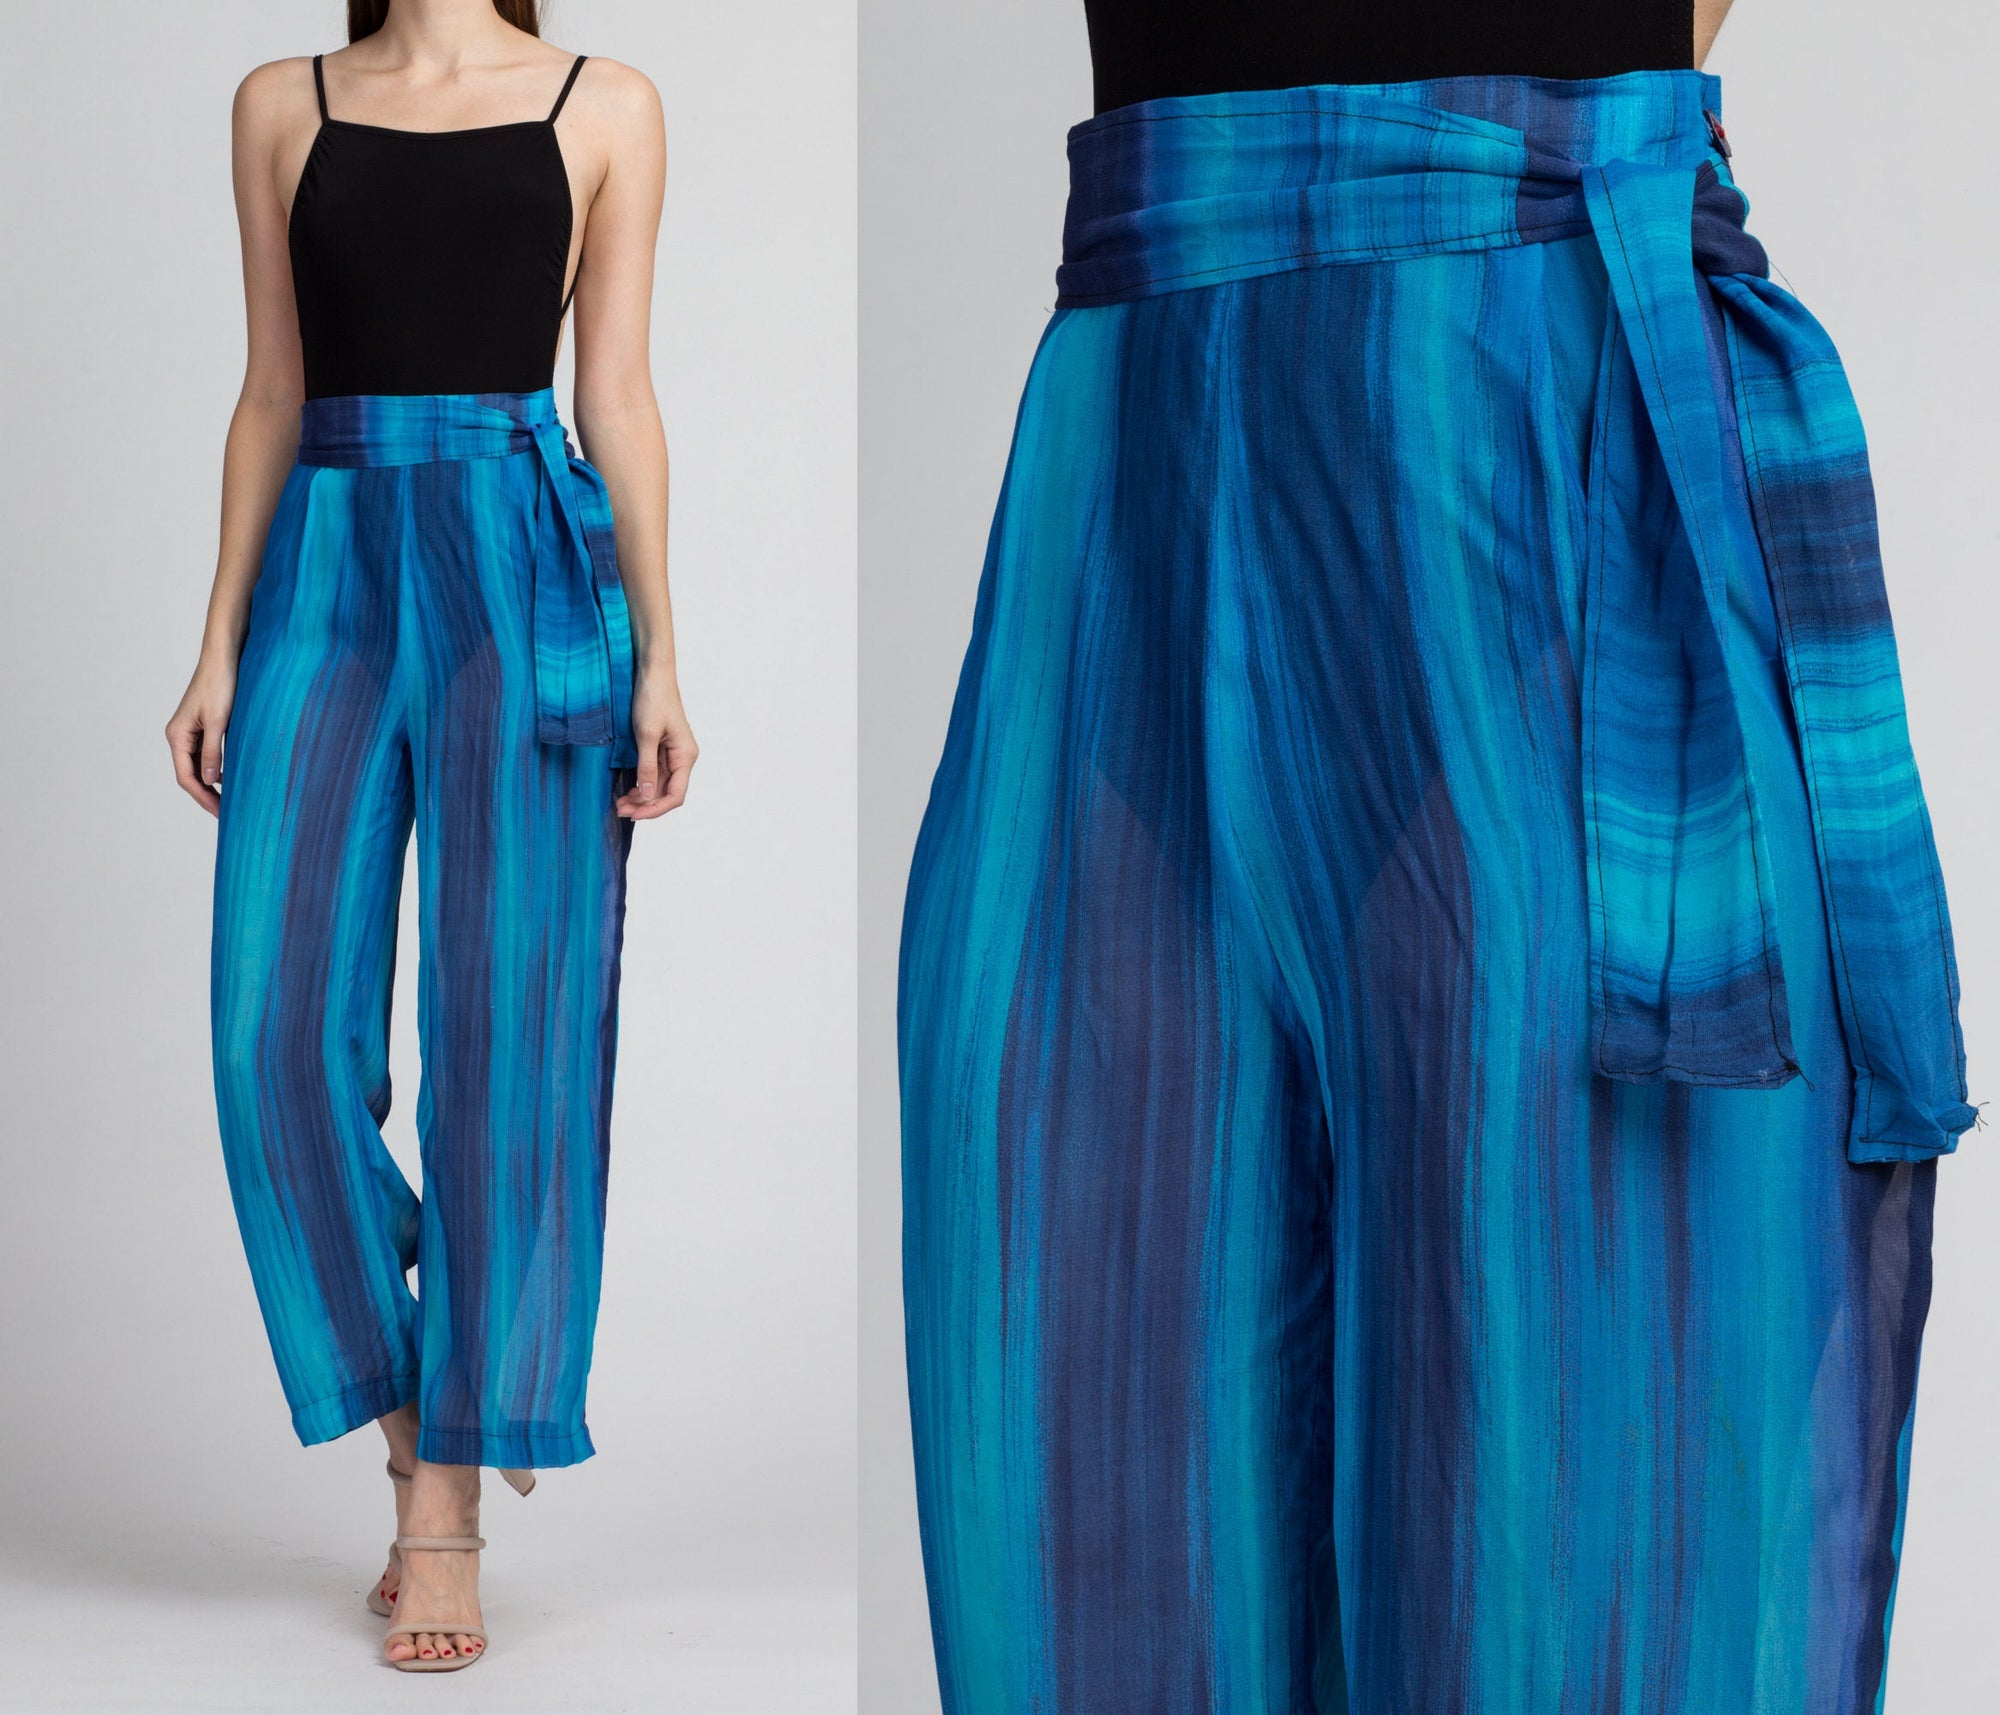 Vintage Sheer Blue Striped Pants - Small, 27""